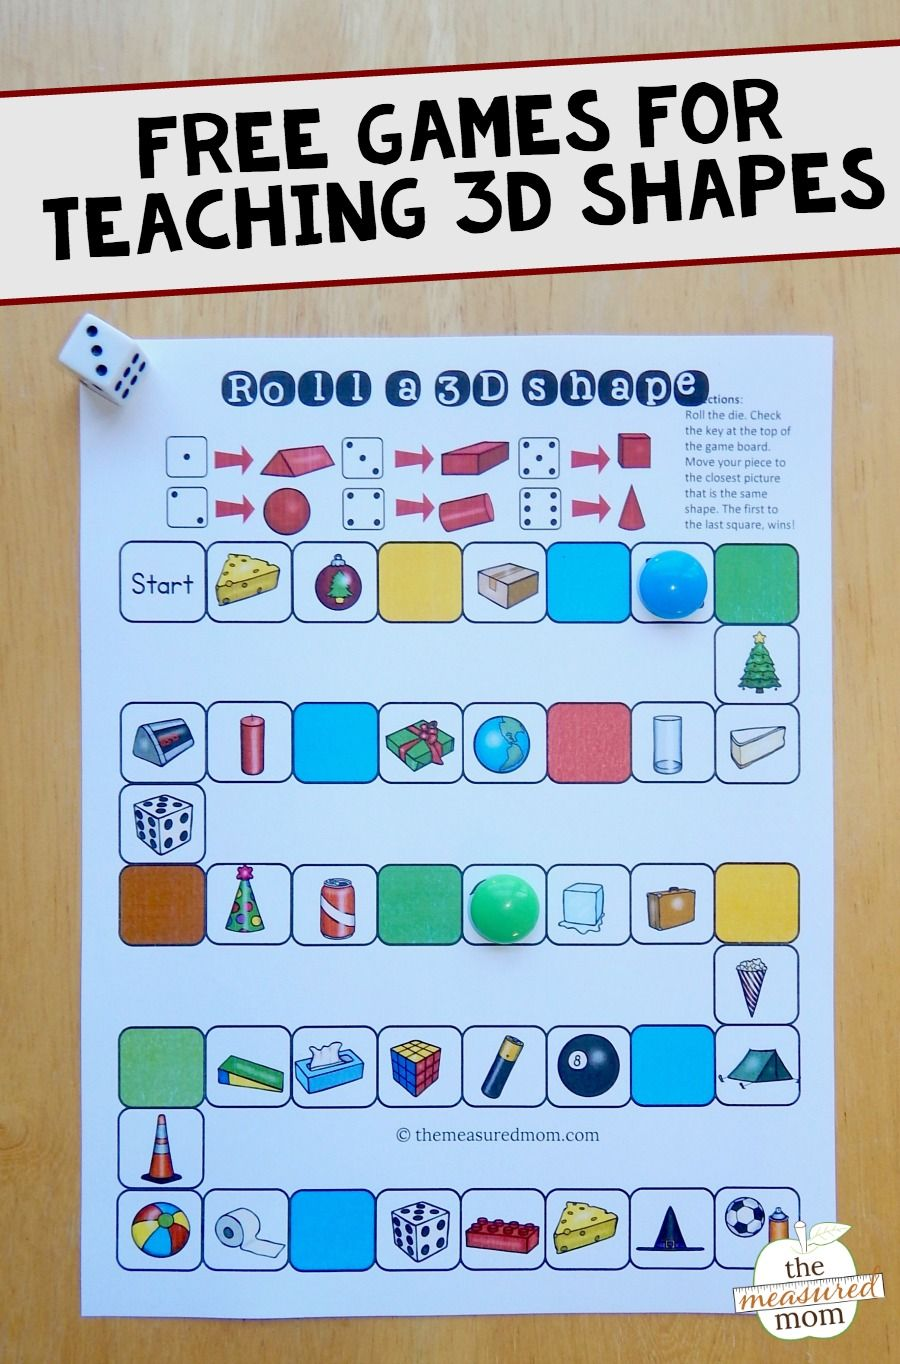 medium resolution of 3D shape games - The Measured Mom   Teaching shapes